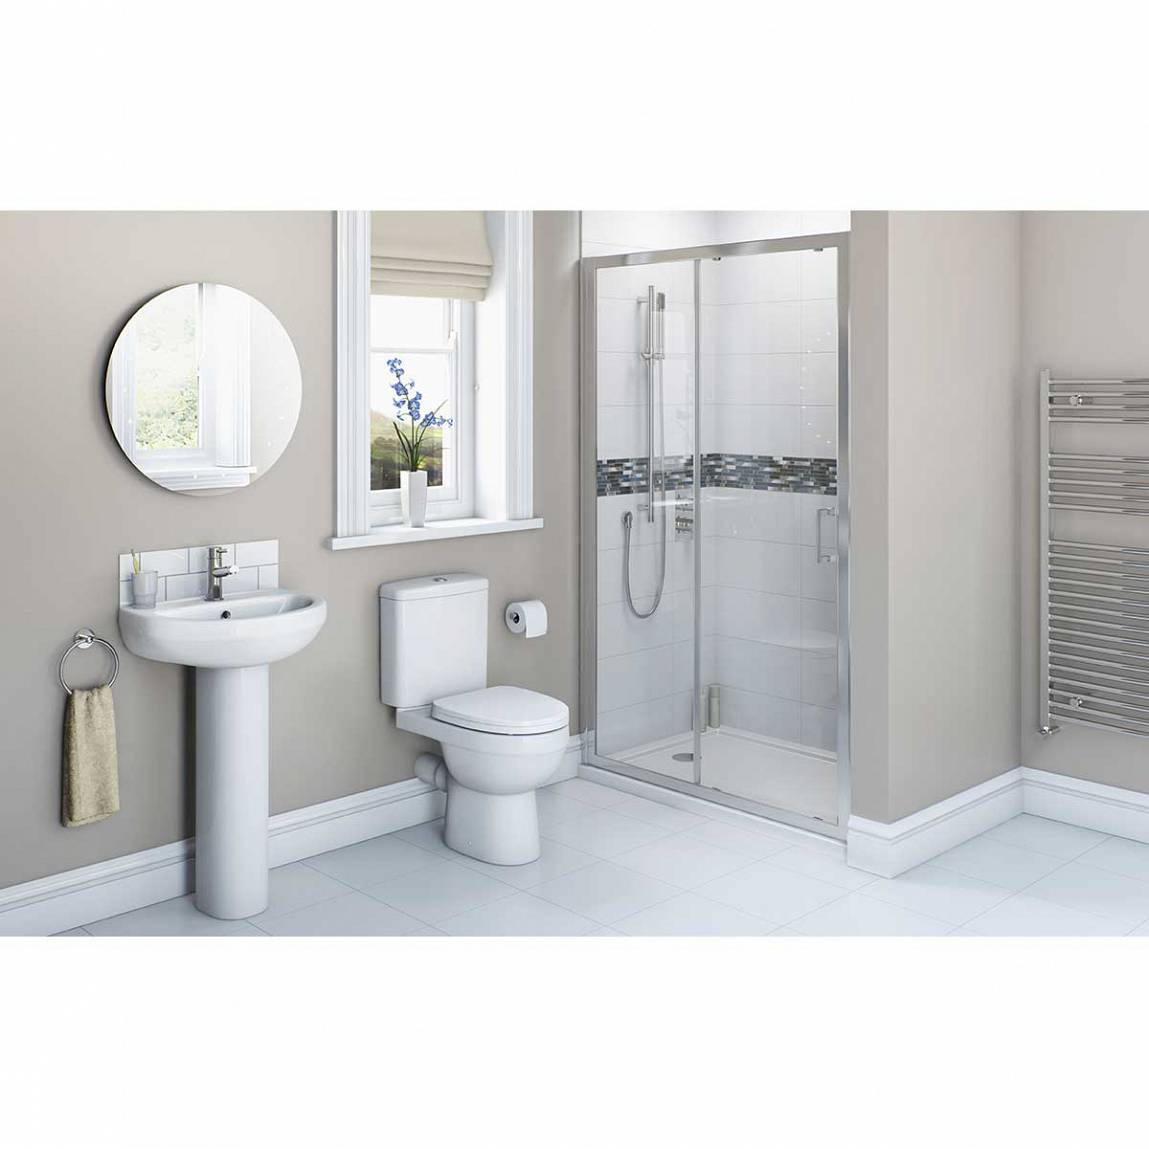 Image of Energy Bathroom set with Sliding Shower Door 1200